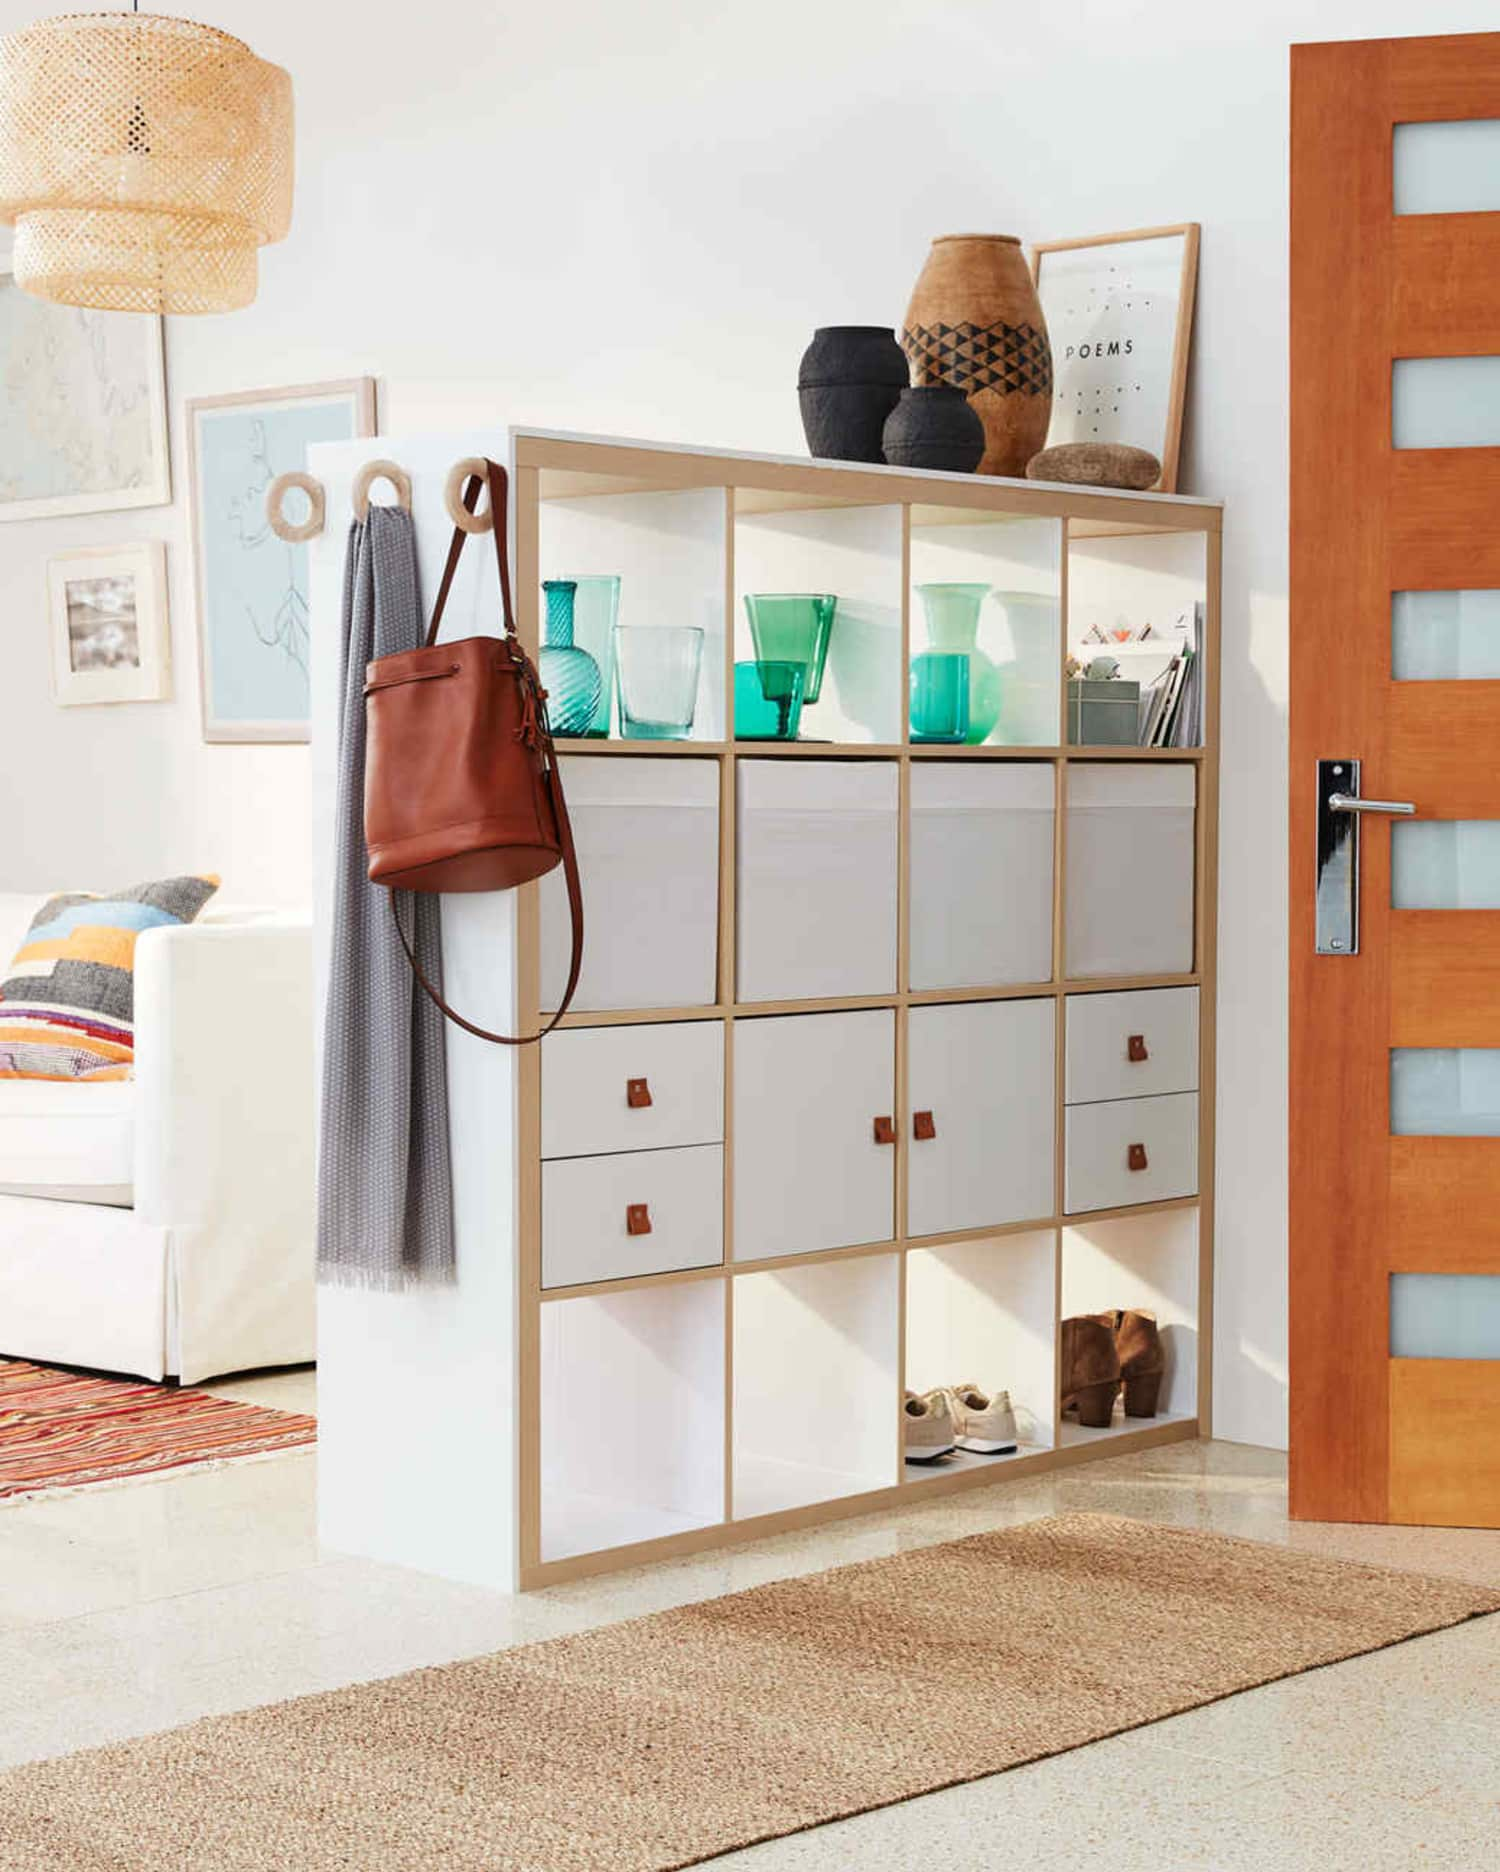 Smart Ways to Use Furniture to Add Storage (and Structure!) to an Open-Plan Space